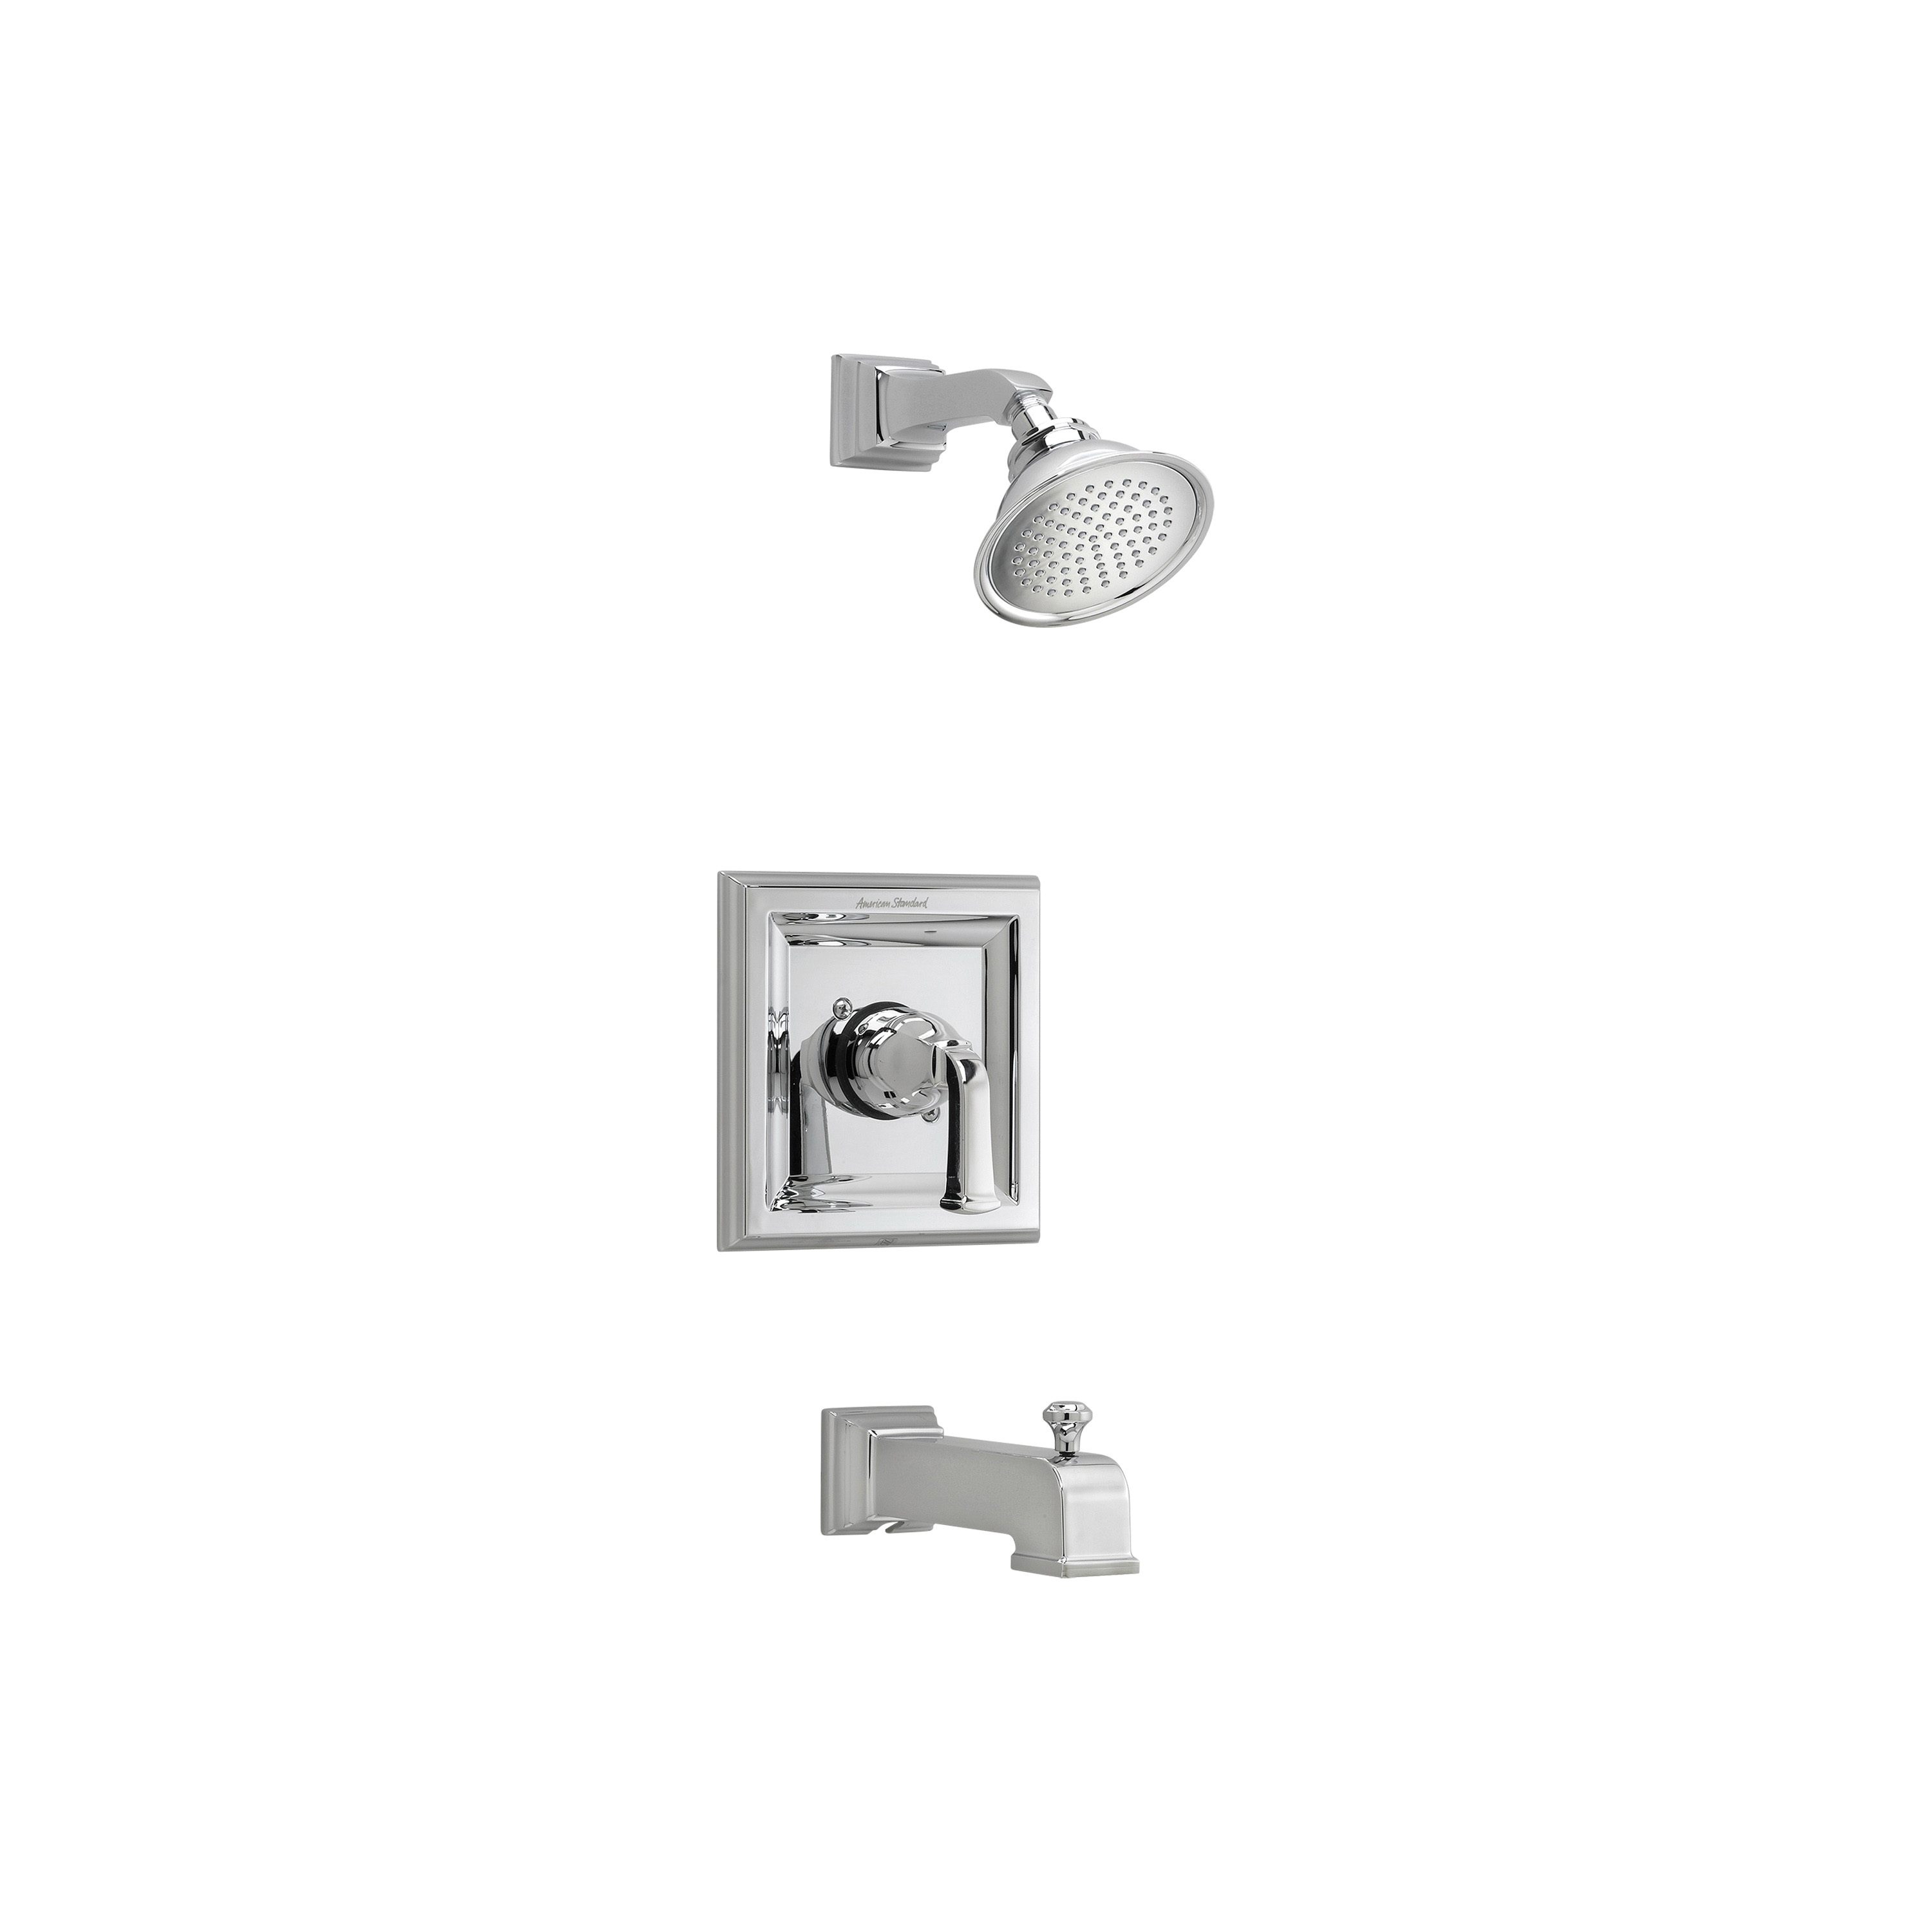 American Standard T555522.002 Town Square® Bath/Shower Trim Kit, 2.5 gpm Shower, Hand Shower Yes/No: No, Polished Chrome